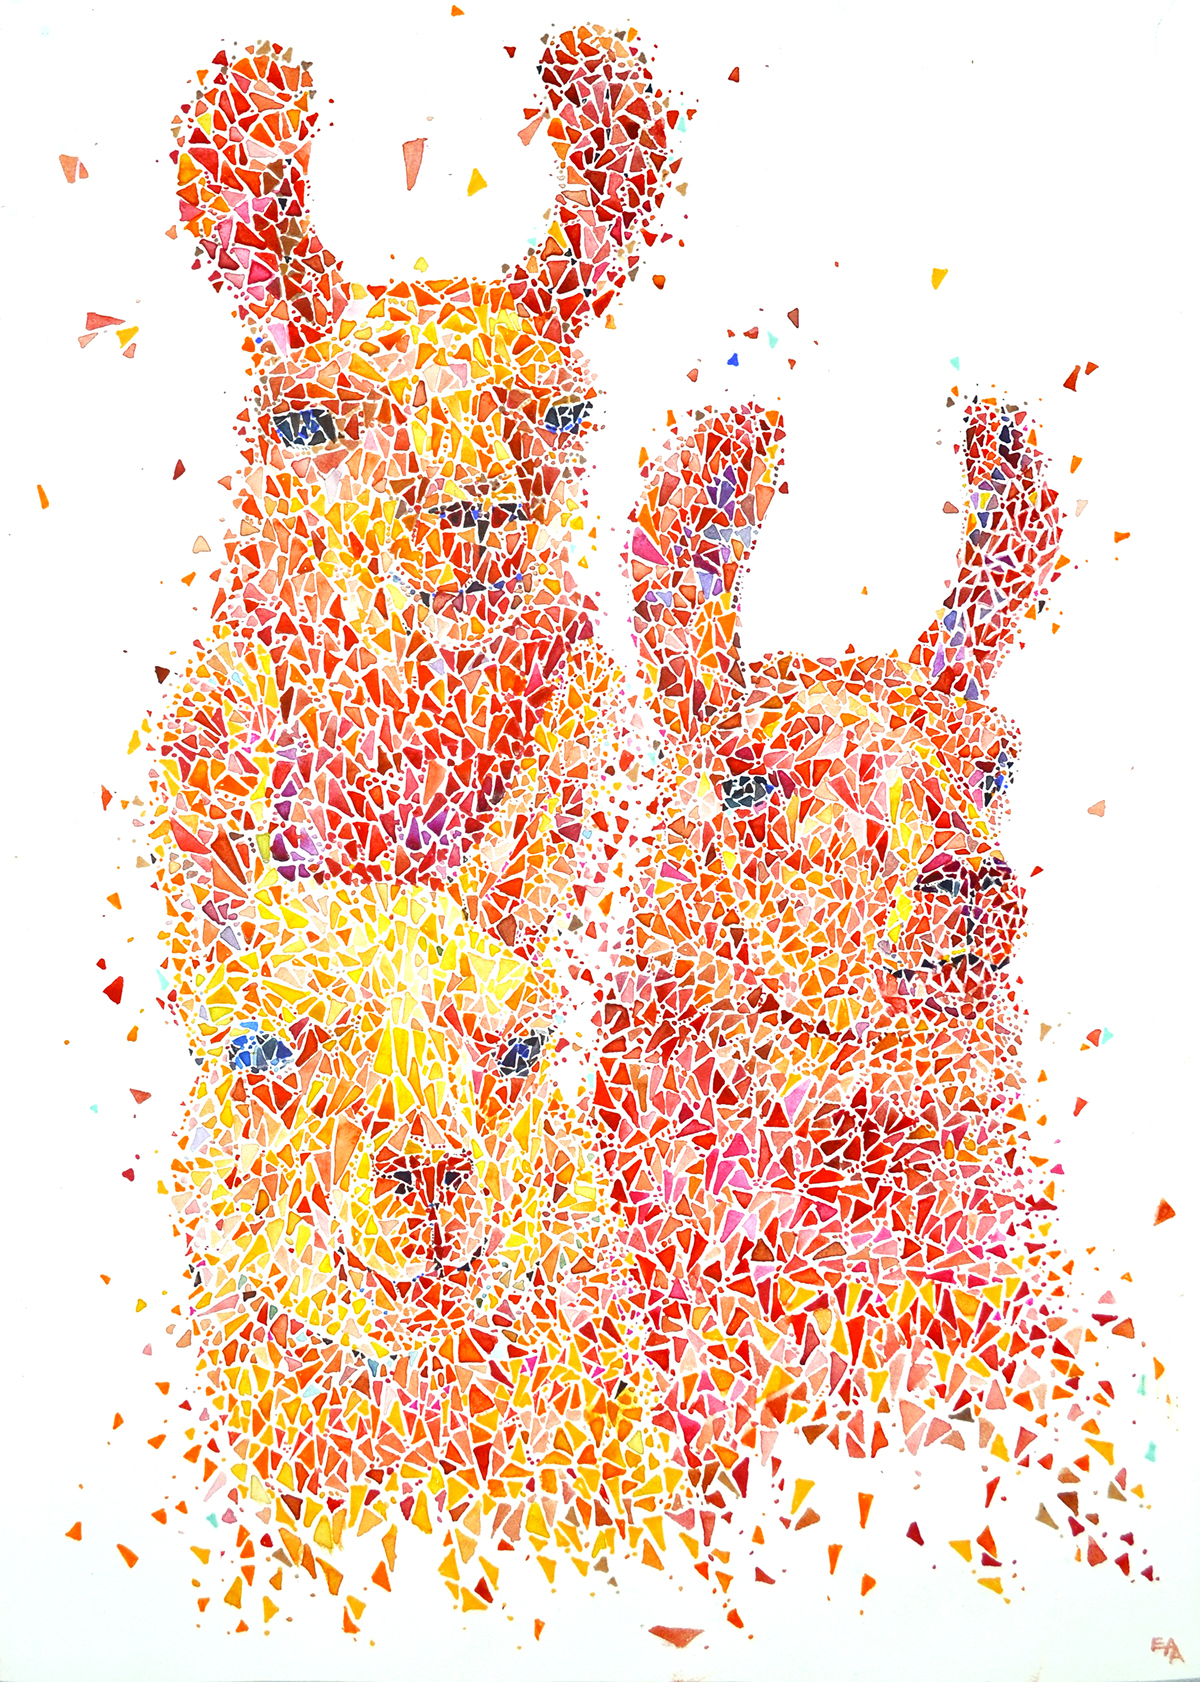 colorful dotted animals 2 on behance